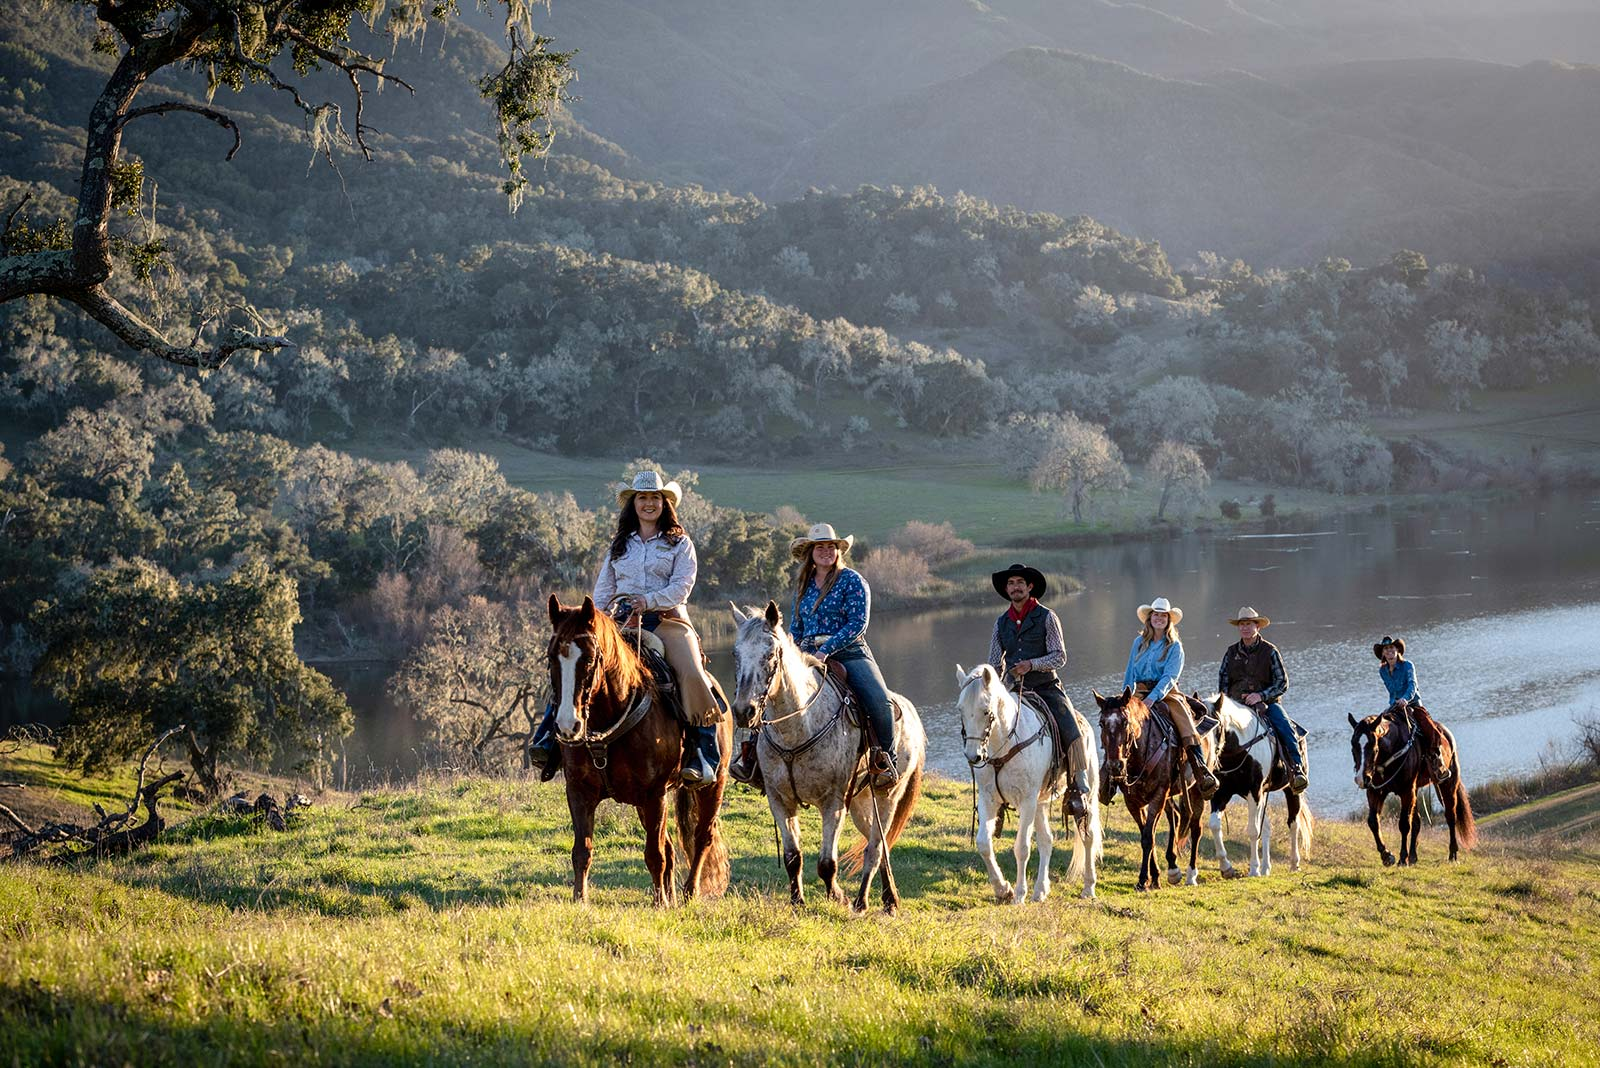 Horseback riders riding over the grassy hill above Alisal Lake